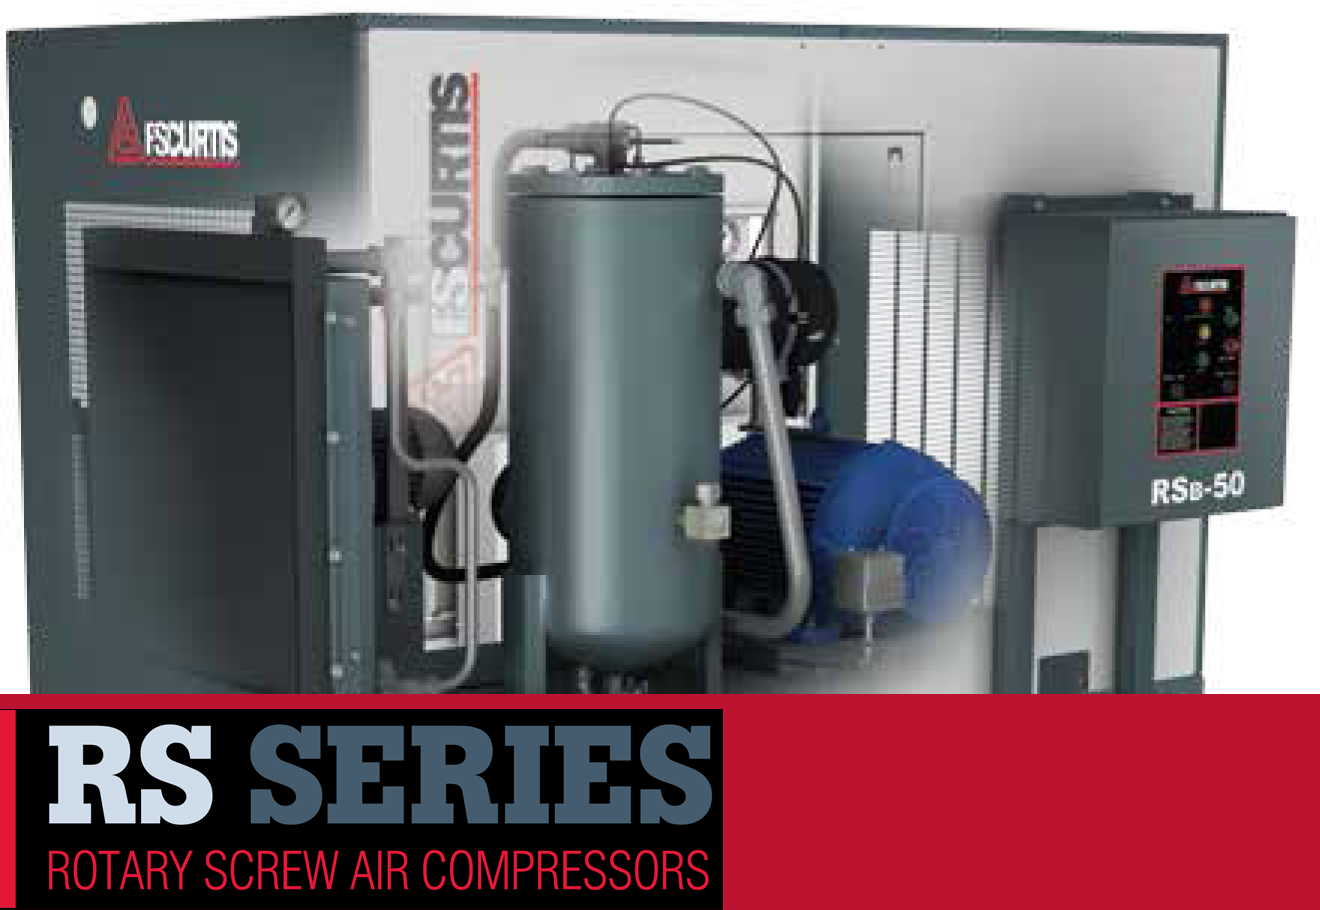 FS Curtis Air Compressor Dealer